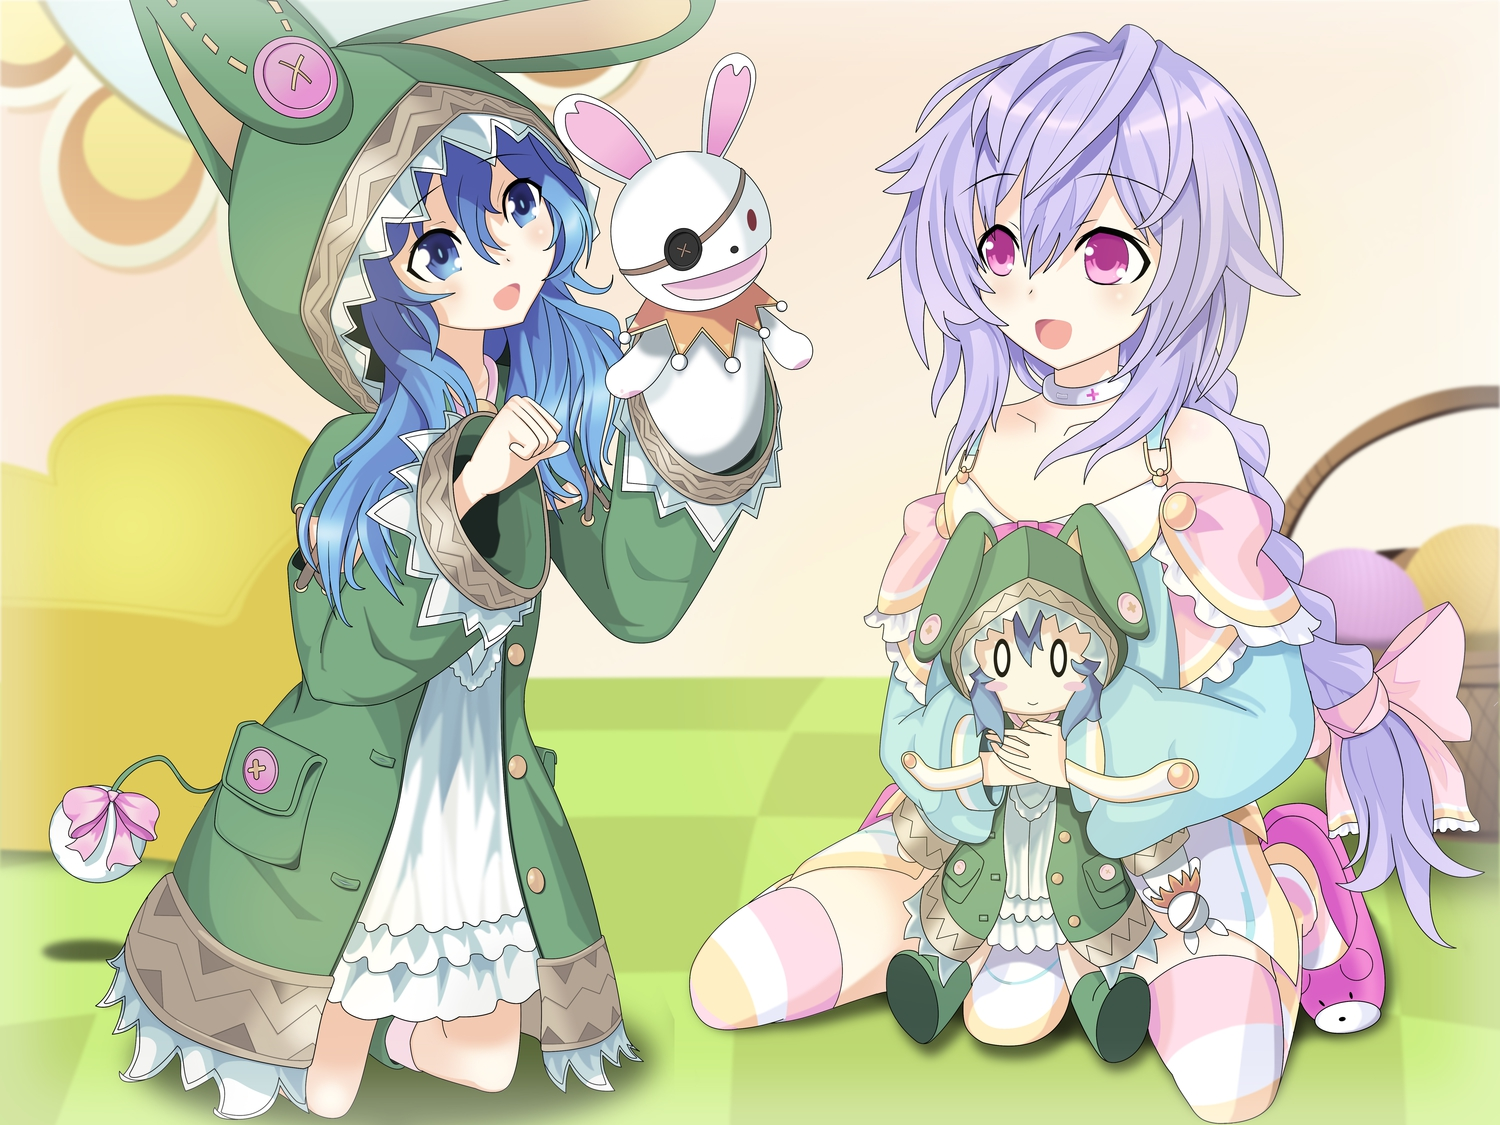 2girls blue_eyes blue_hair bow braids choker crossover date_a_live doll hyperdimension_neptunia long_hair puppet purple_hair pururut red_eyes thighhighs yoshino_(date_a_live) yoshinon_(date_a_live)